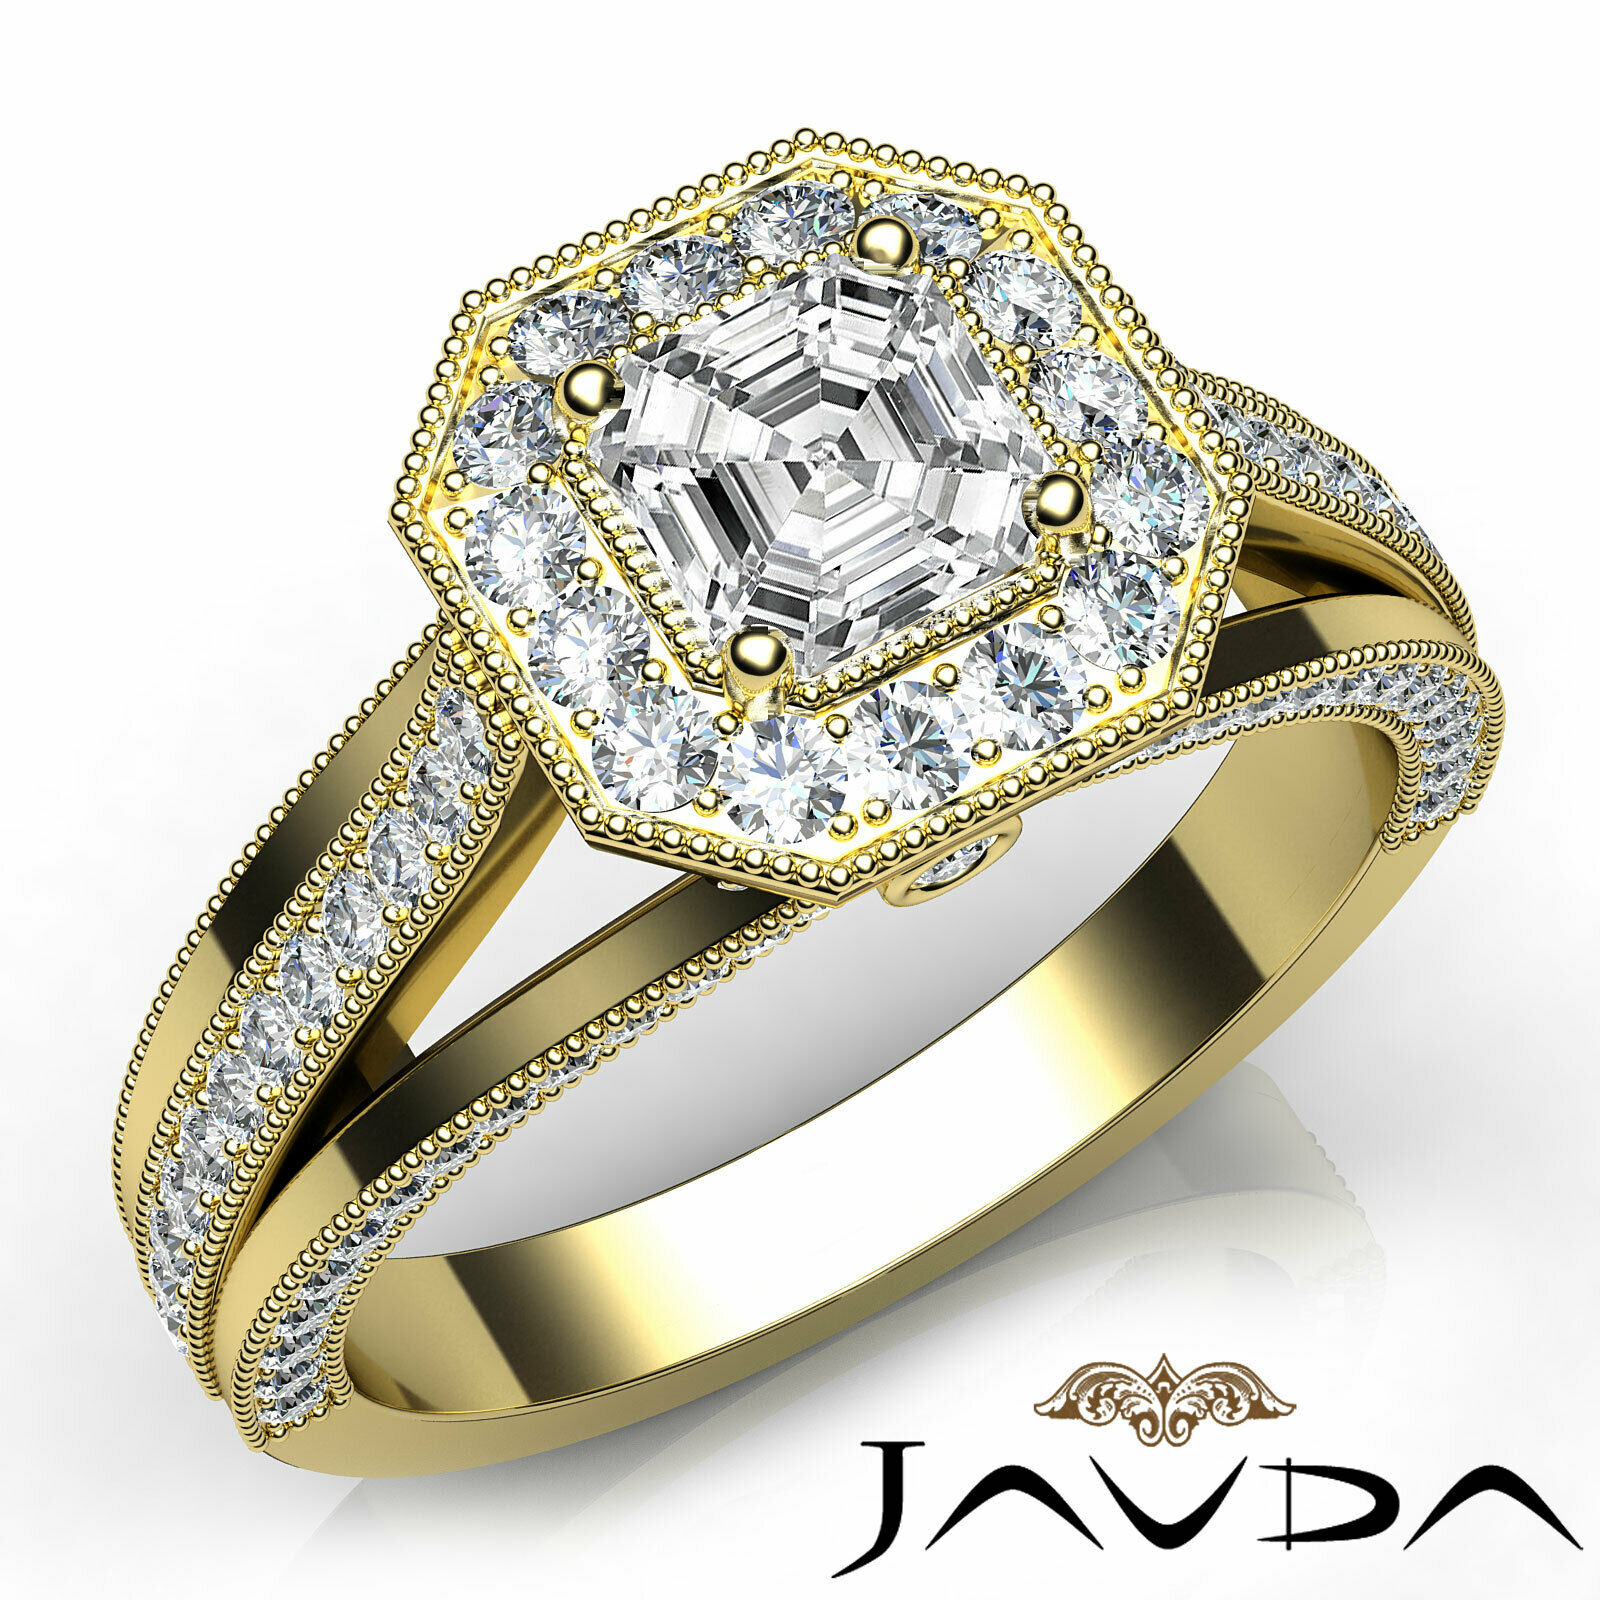 Asscher Diamond Engagement GIA H VS2 18k Yellow Gold Halo Pave Set Ring 1.4Ct